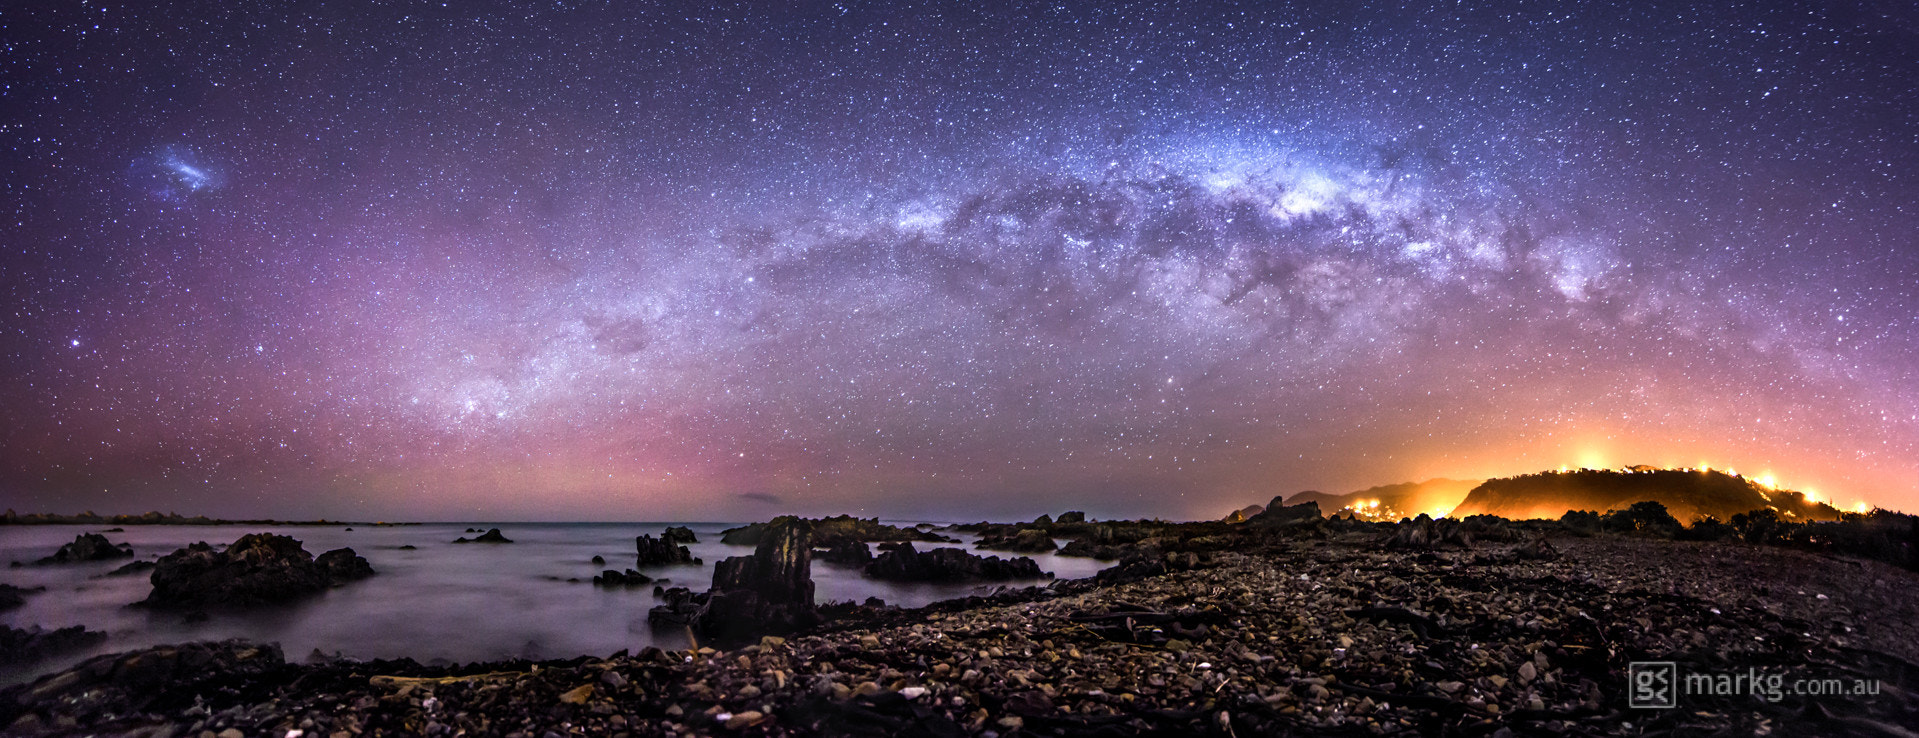 Photograph Princess Bay Aurora and Milky Way by Mark Gee on 500px